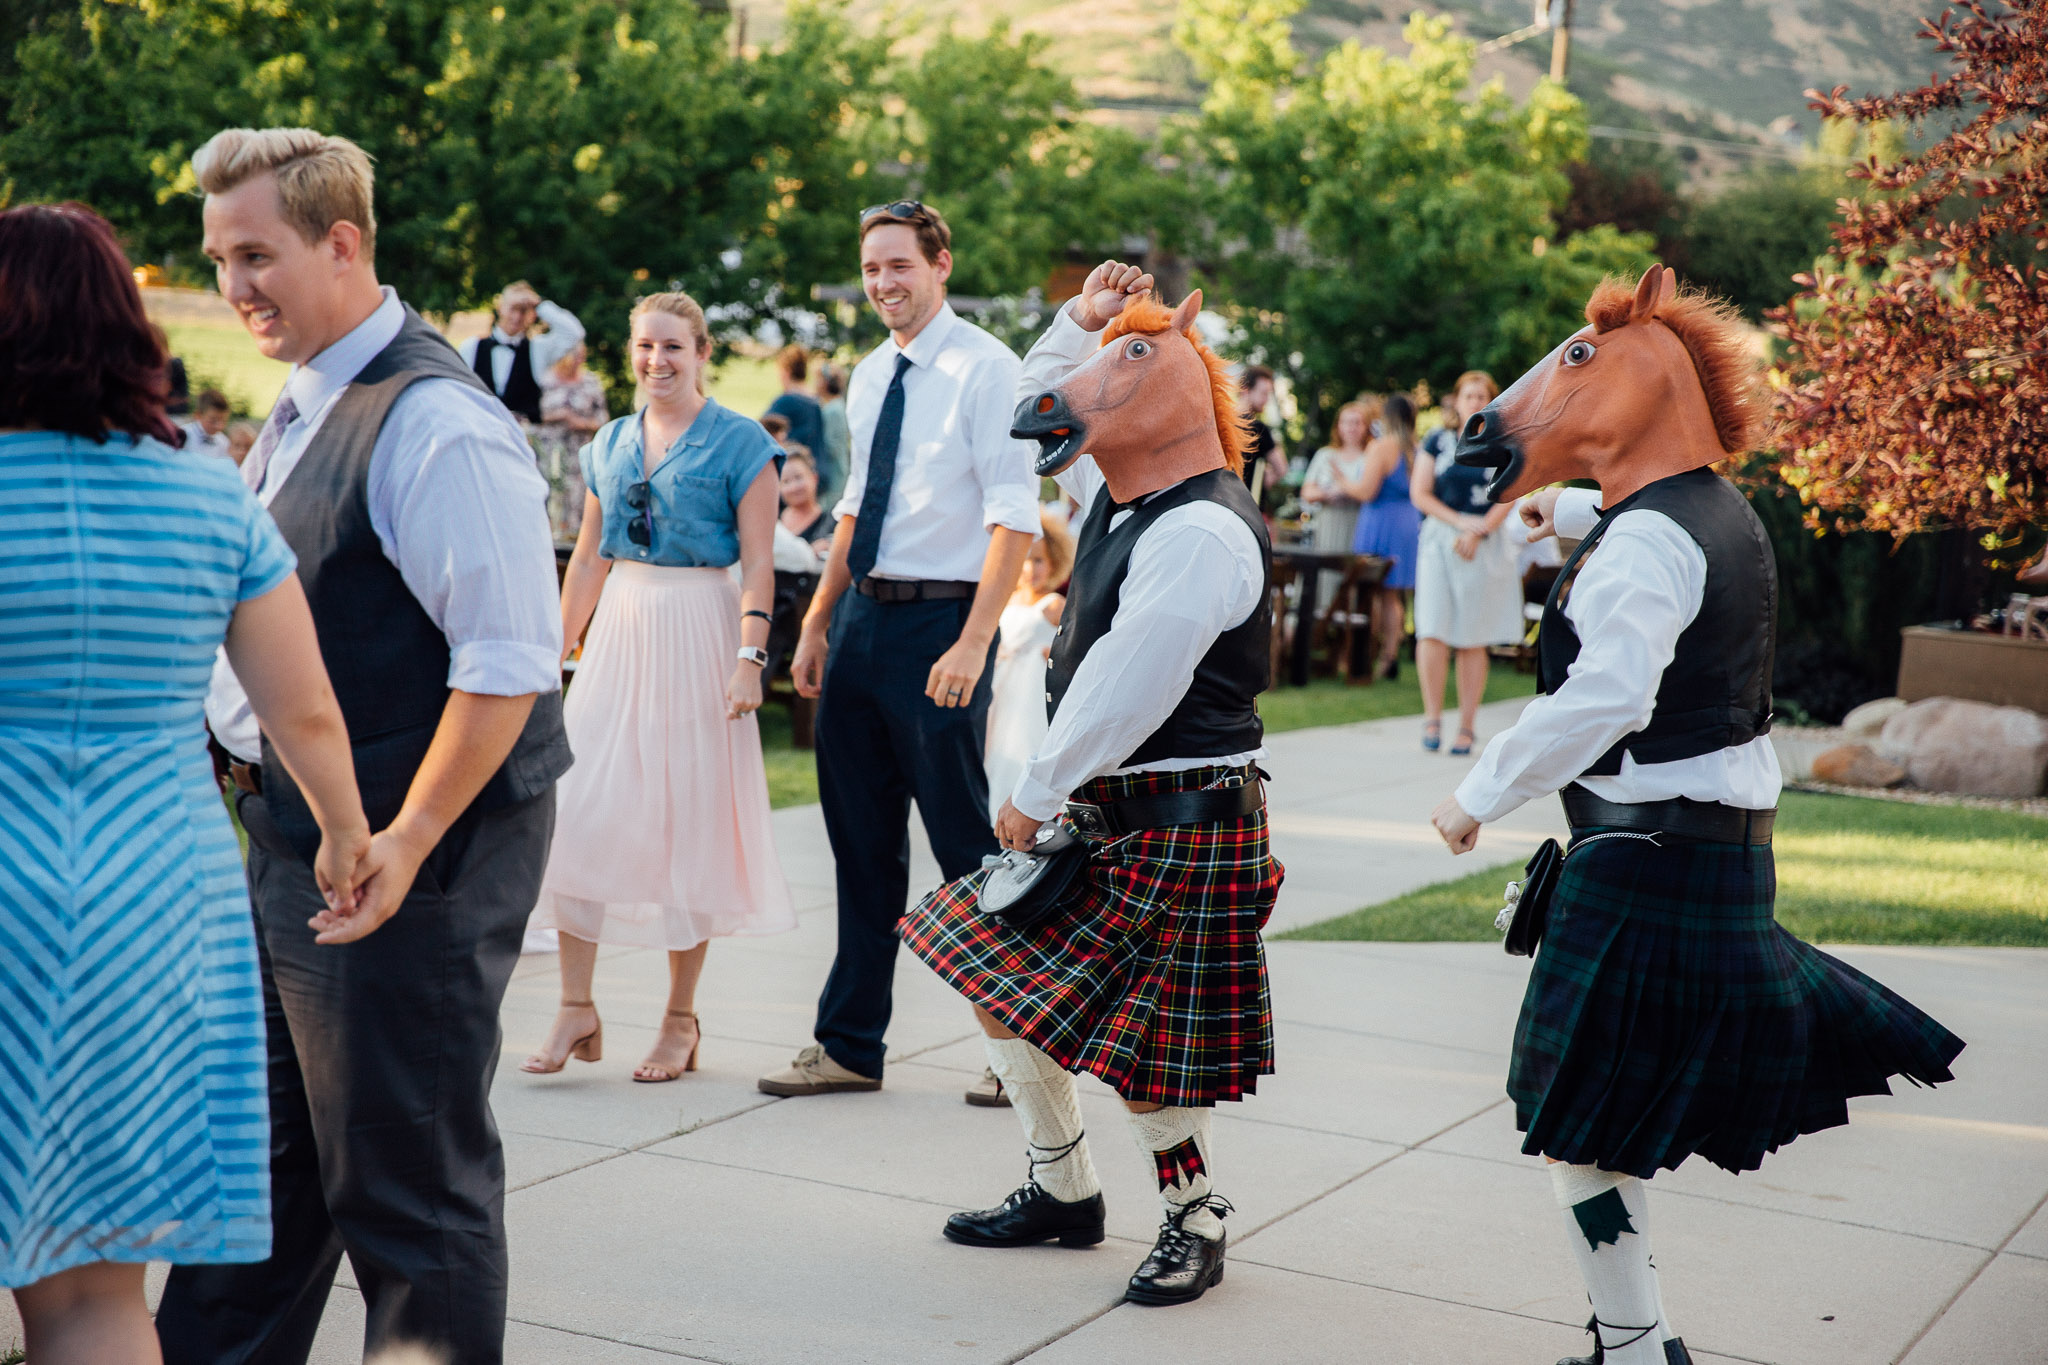 Guests dance at wedding reception